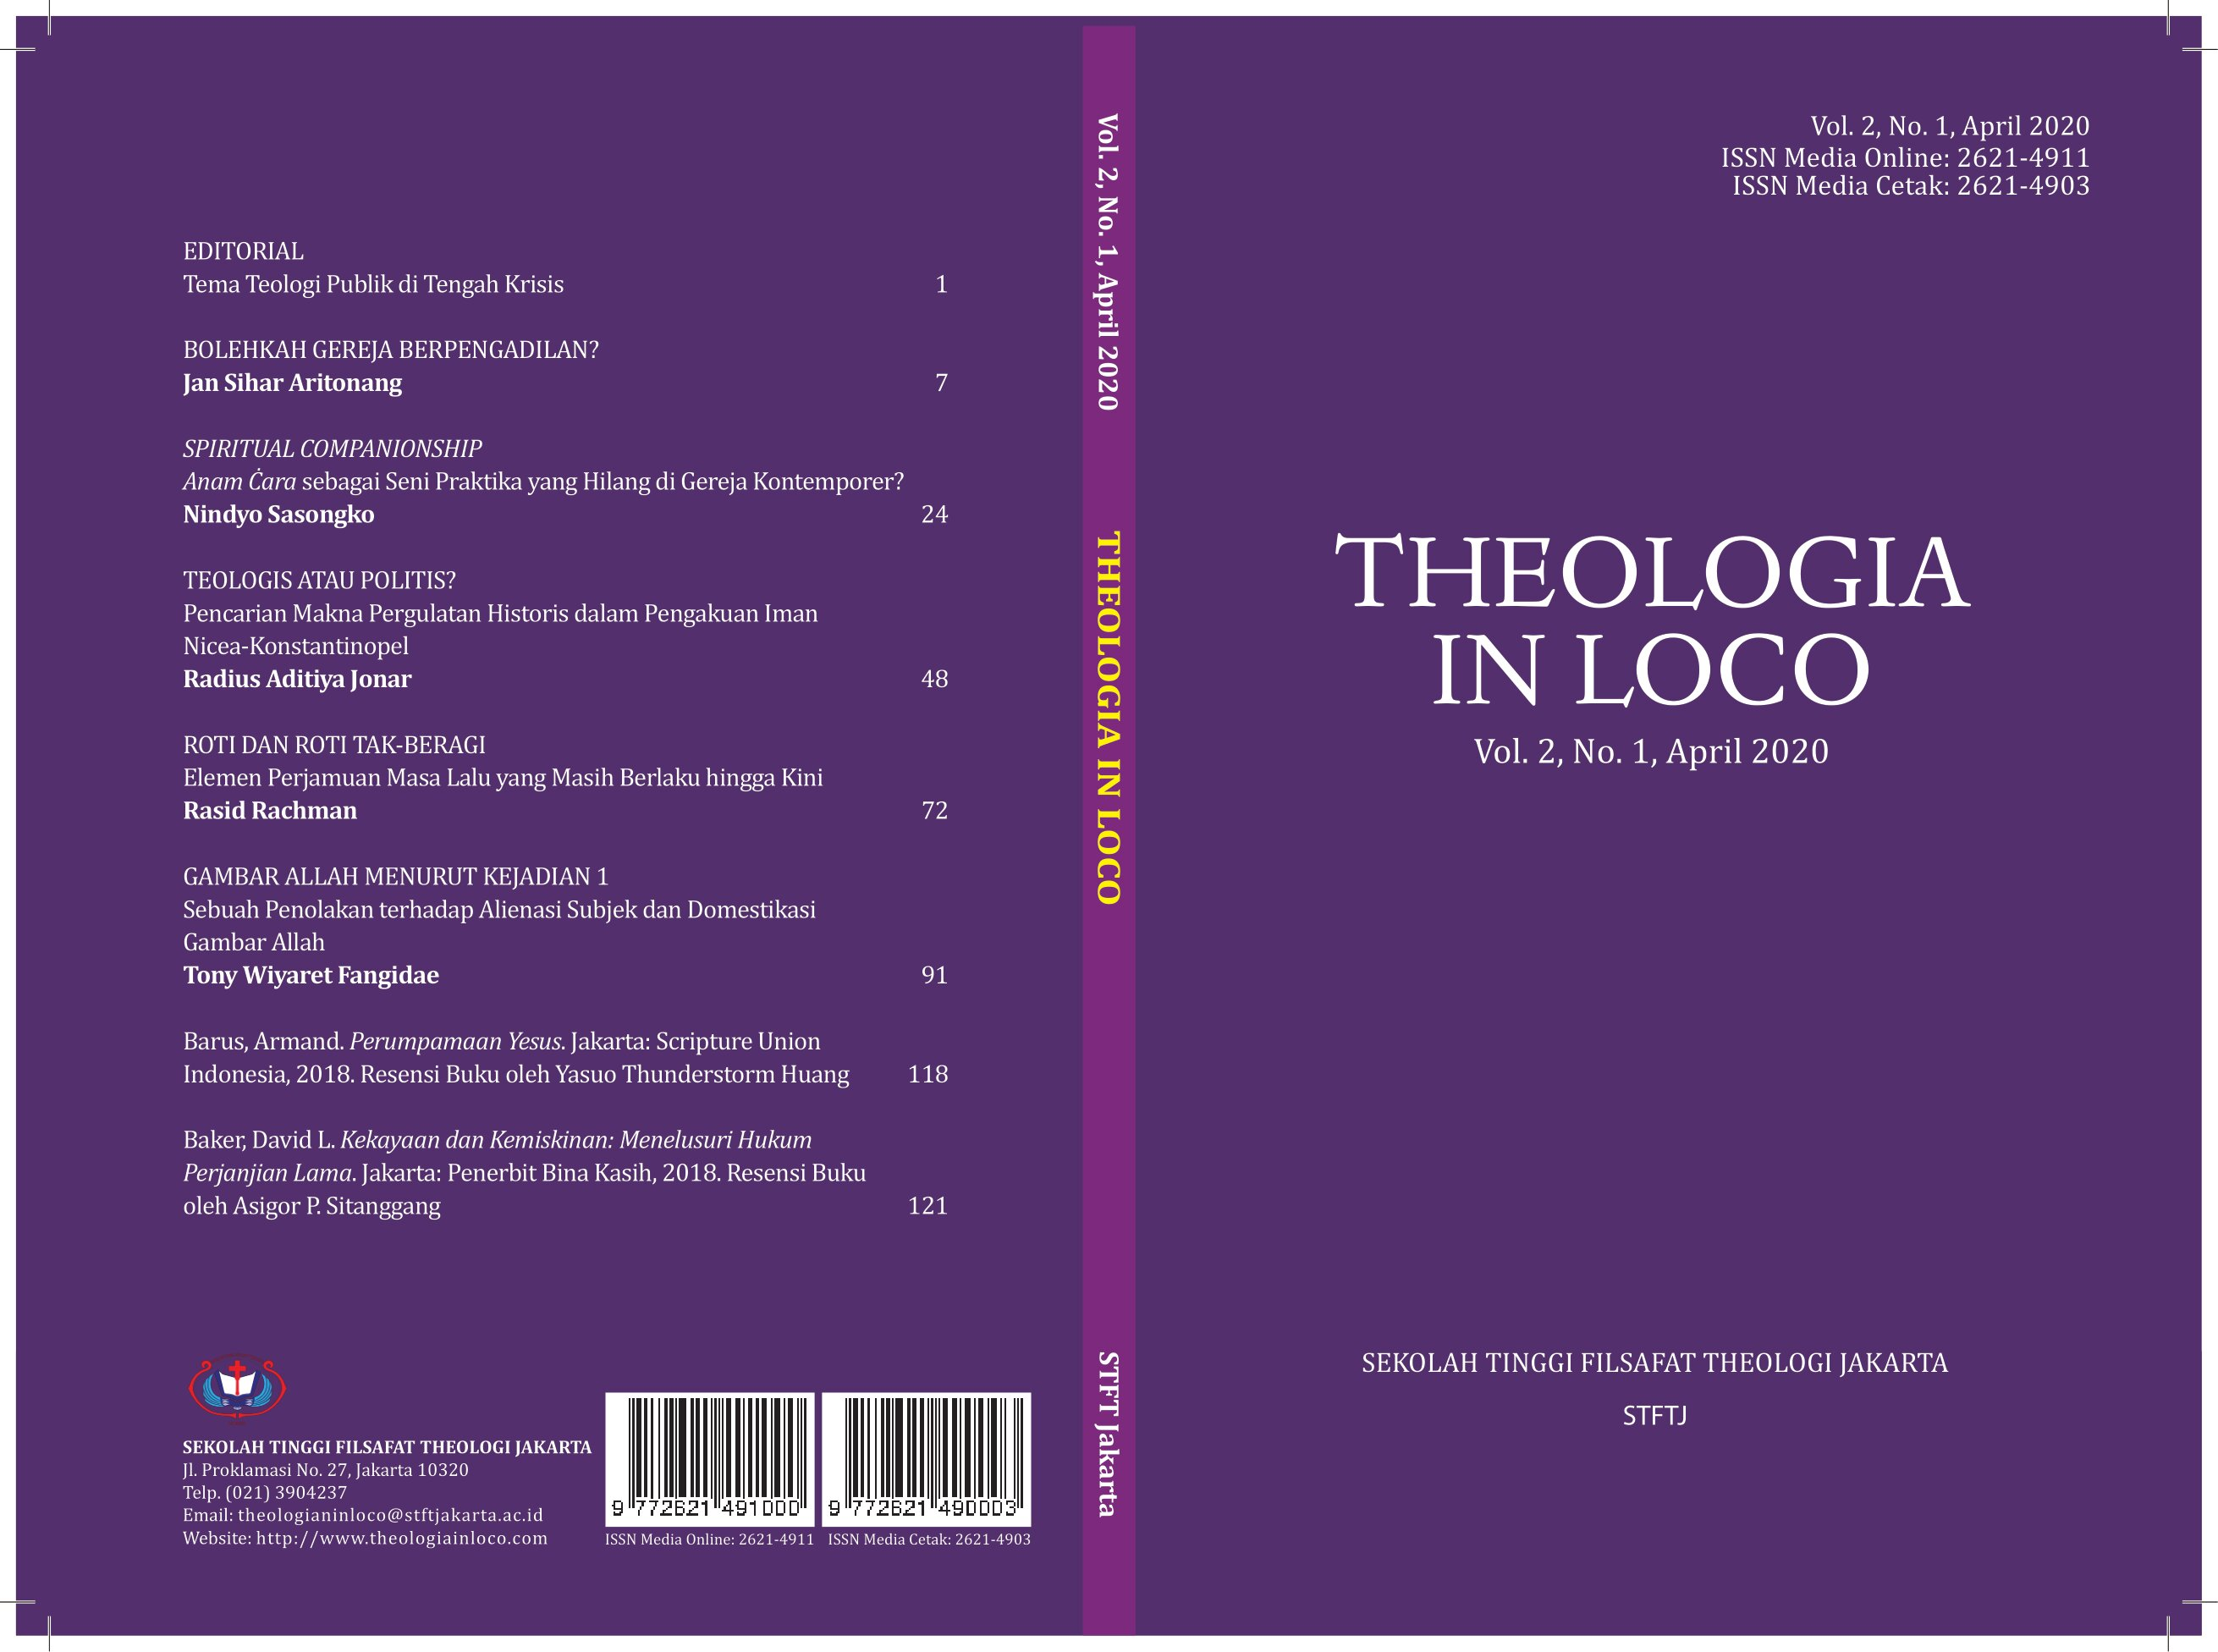 Theologia in Loco Vol. 2 No. 1 April 2020